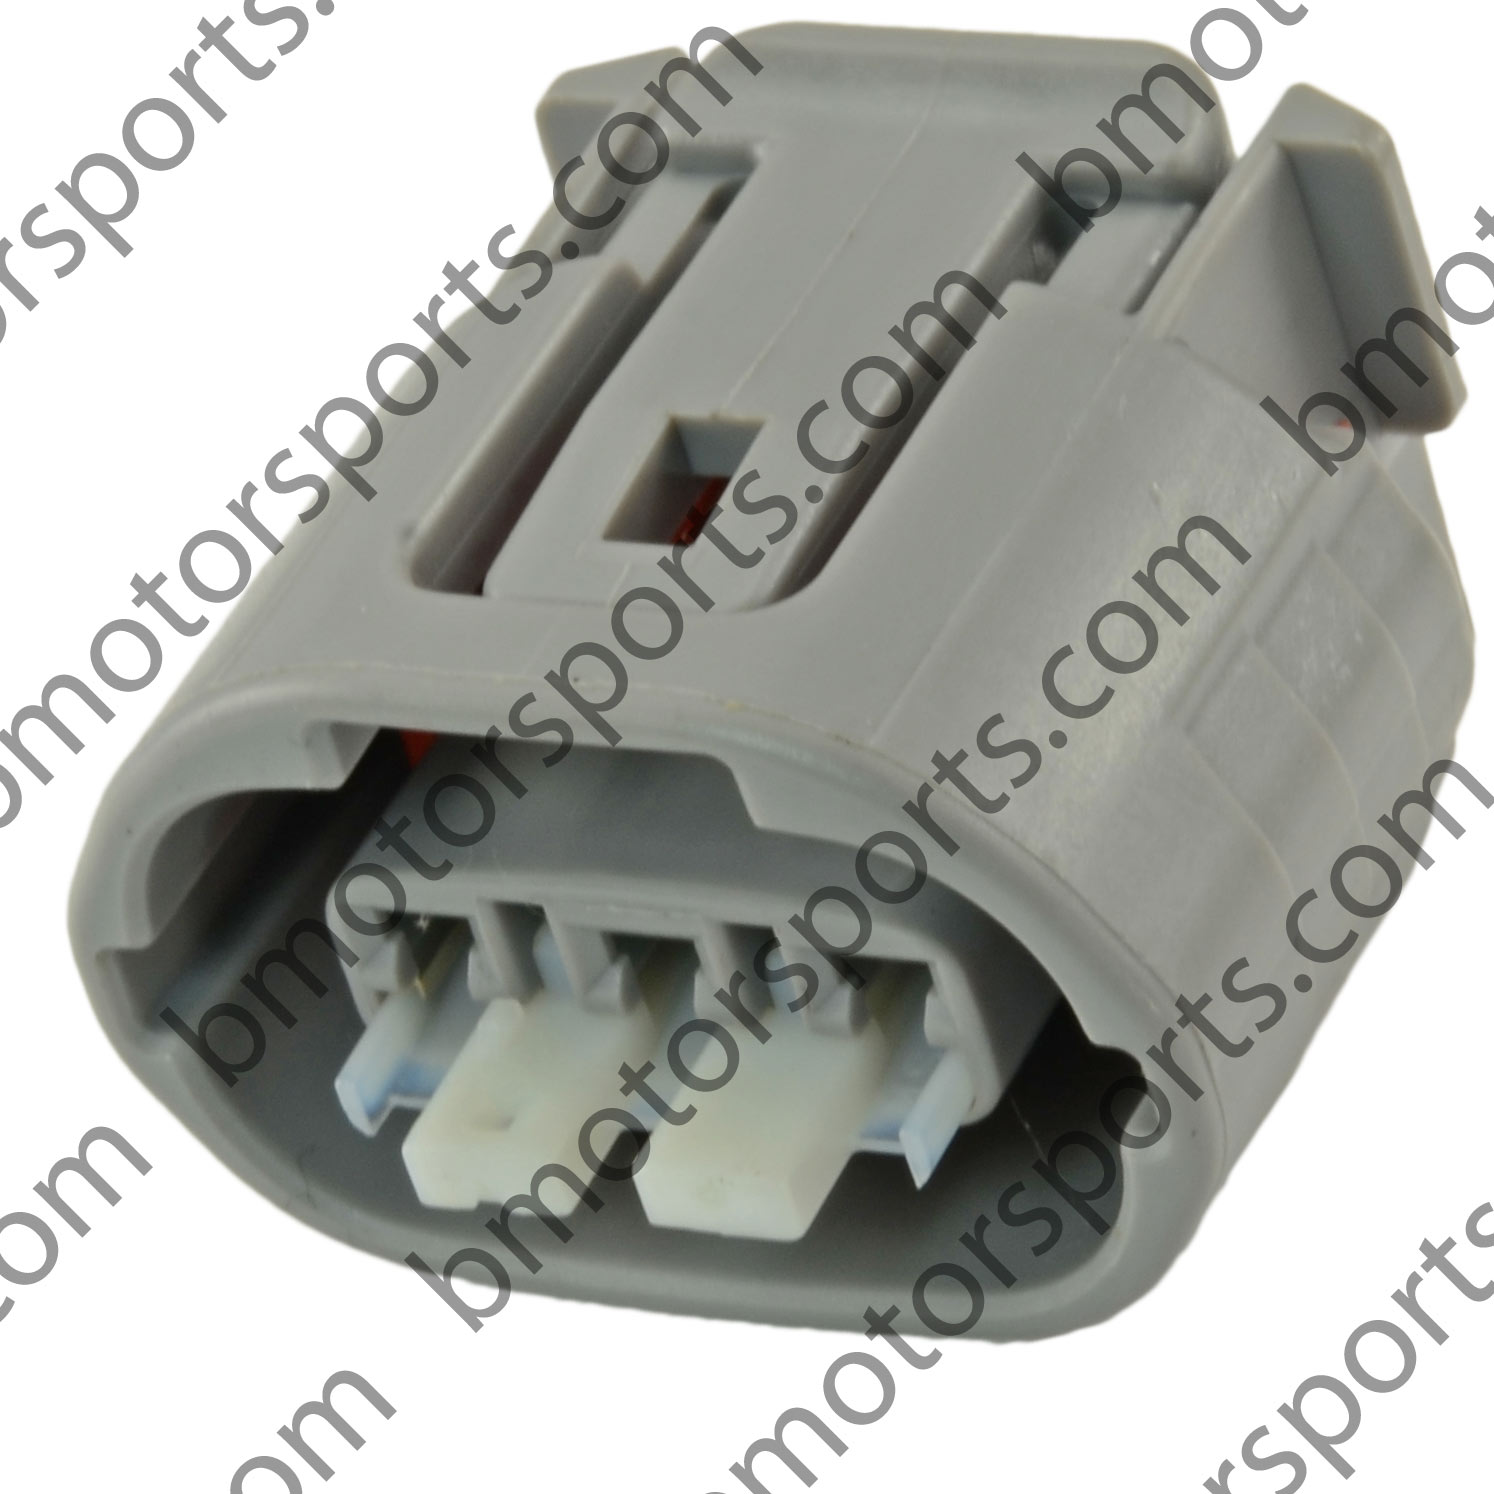 ... Nissan Murano 2004 Chevrolet Tahoe Wiring Diagram 2004. Sumitomo TS 3  way Plug Housing - 6189-0443 / 90980-11349 Connector Pigtail .